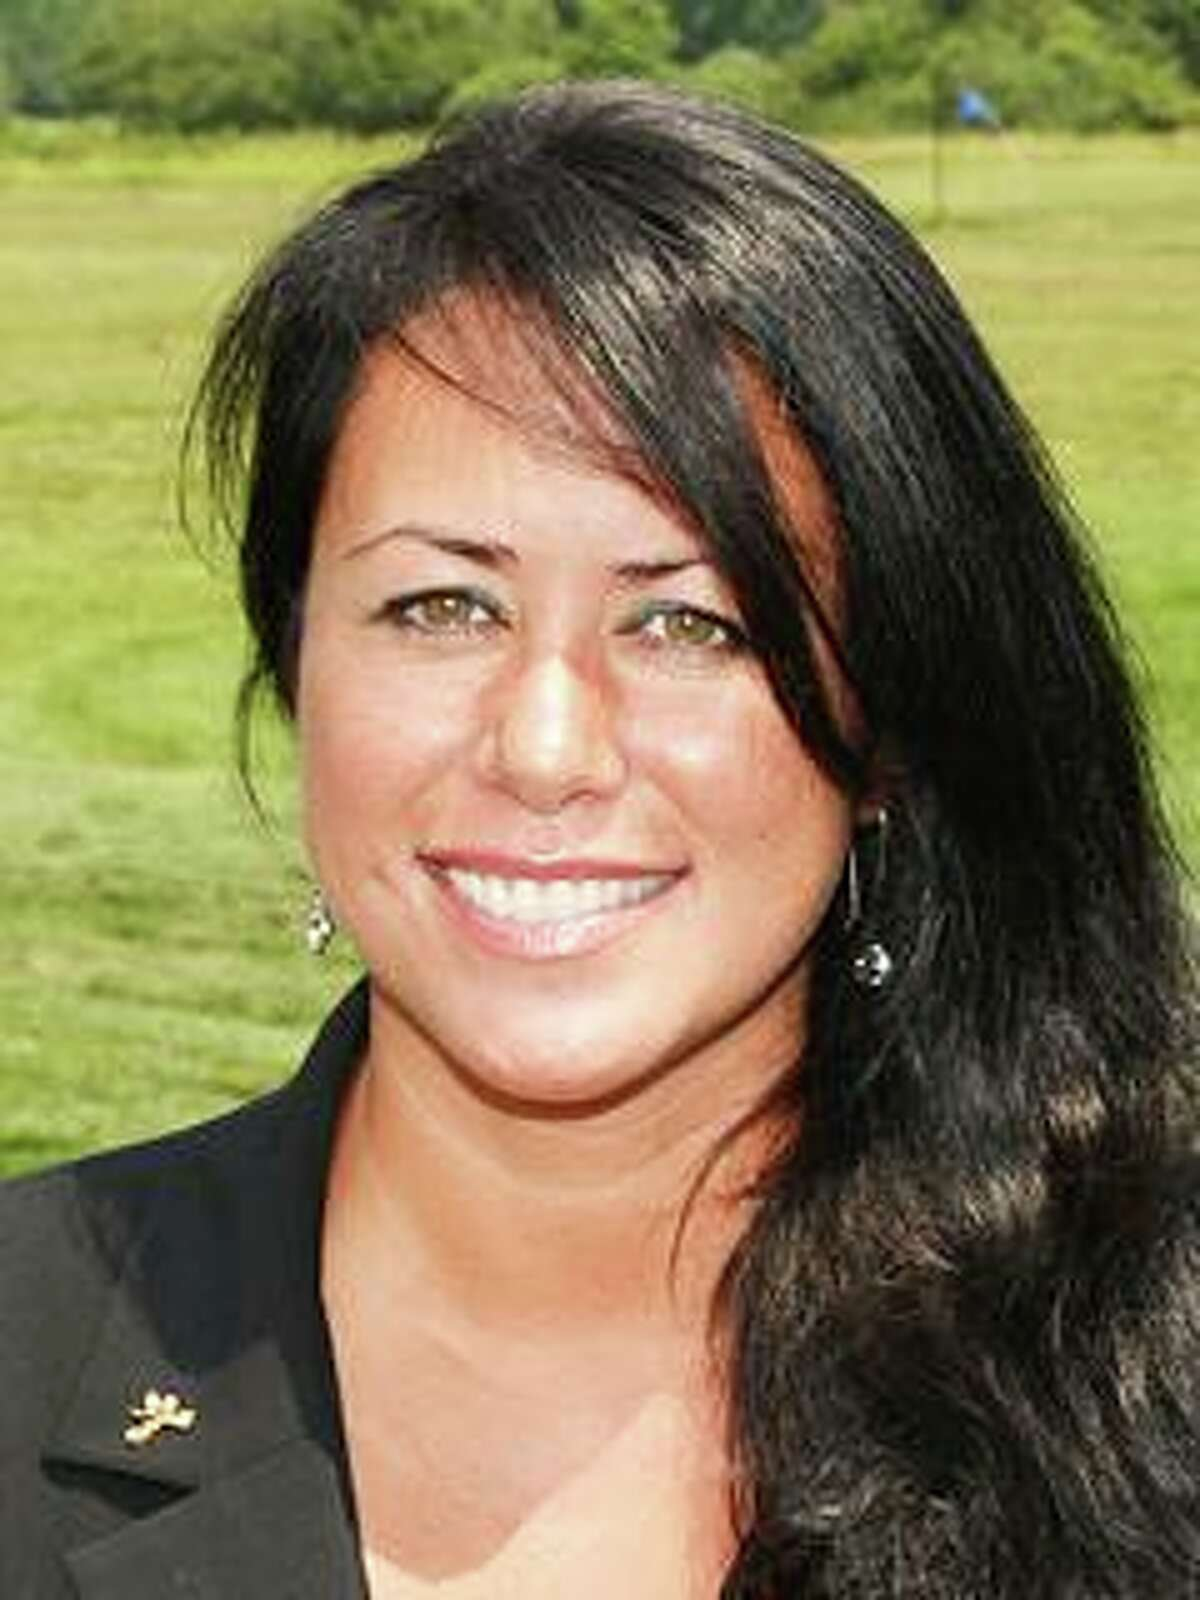 Marissa Kulig Crow, a coach at The Lyman Golf Center at Lyman Orchards in Middlefield, recently received the LPGA Northeast Section 2021 Teacher of the Year Award.